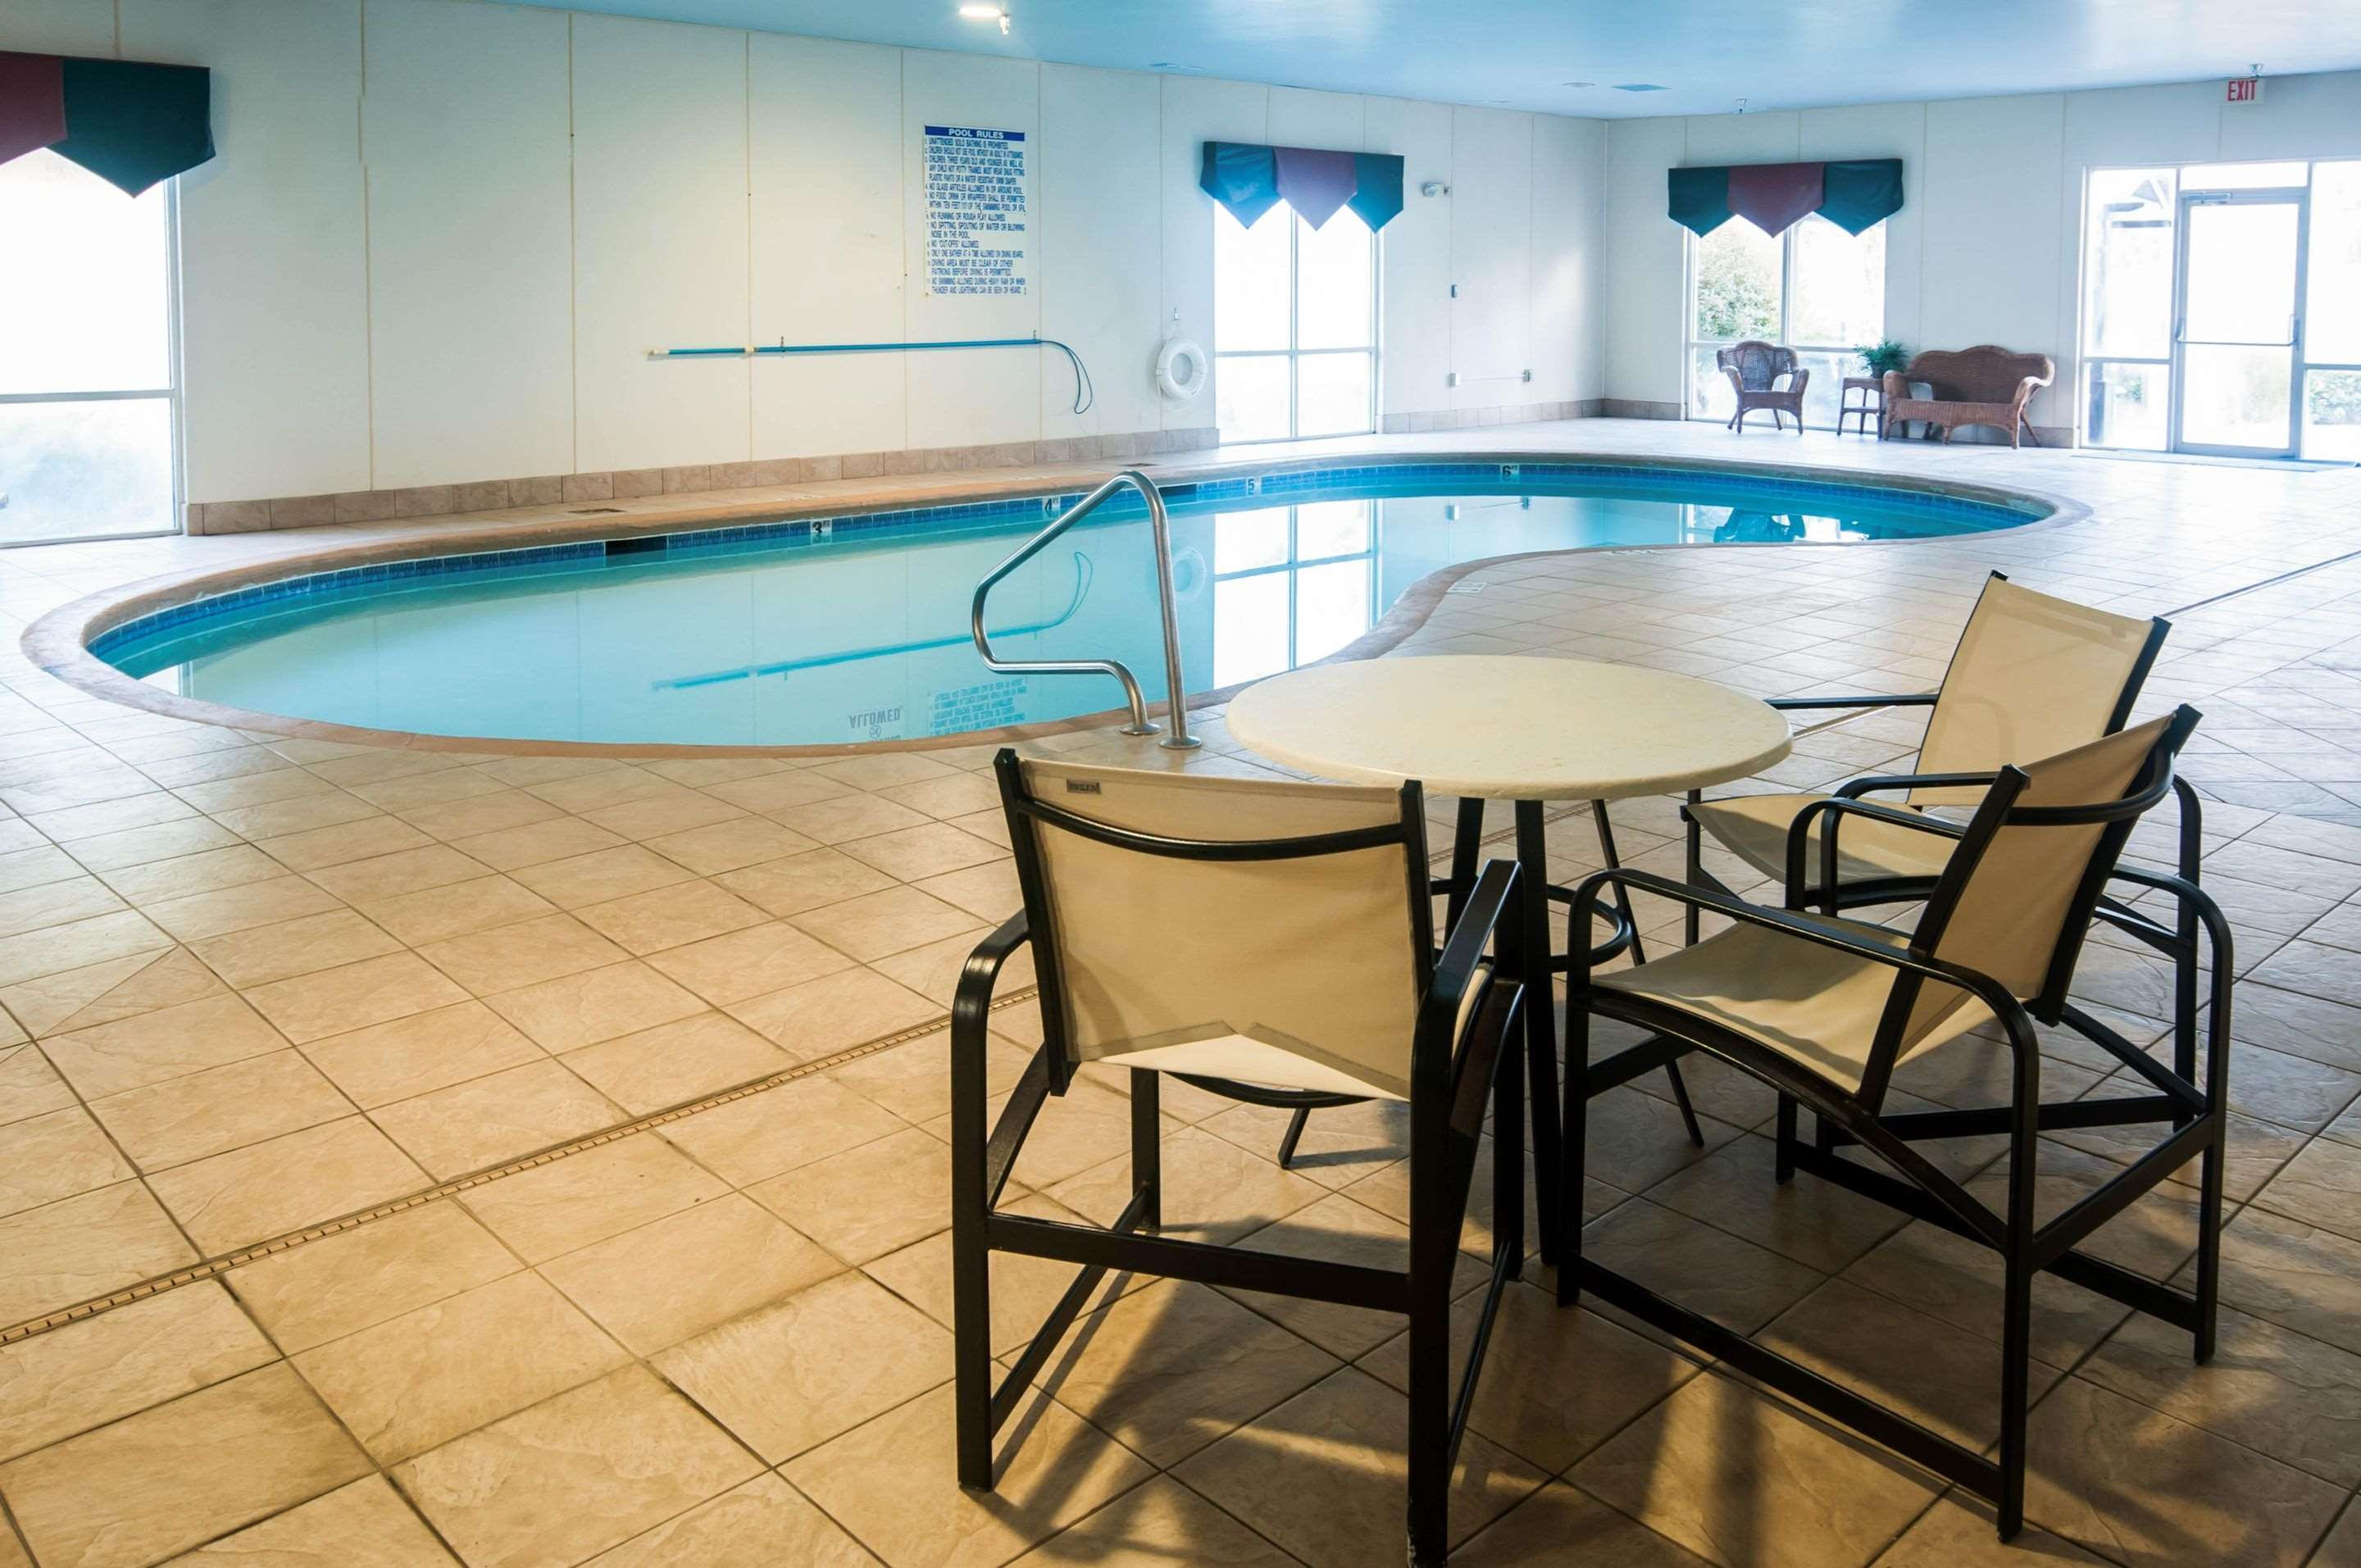 Indoor pool with table and chairs